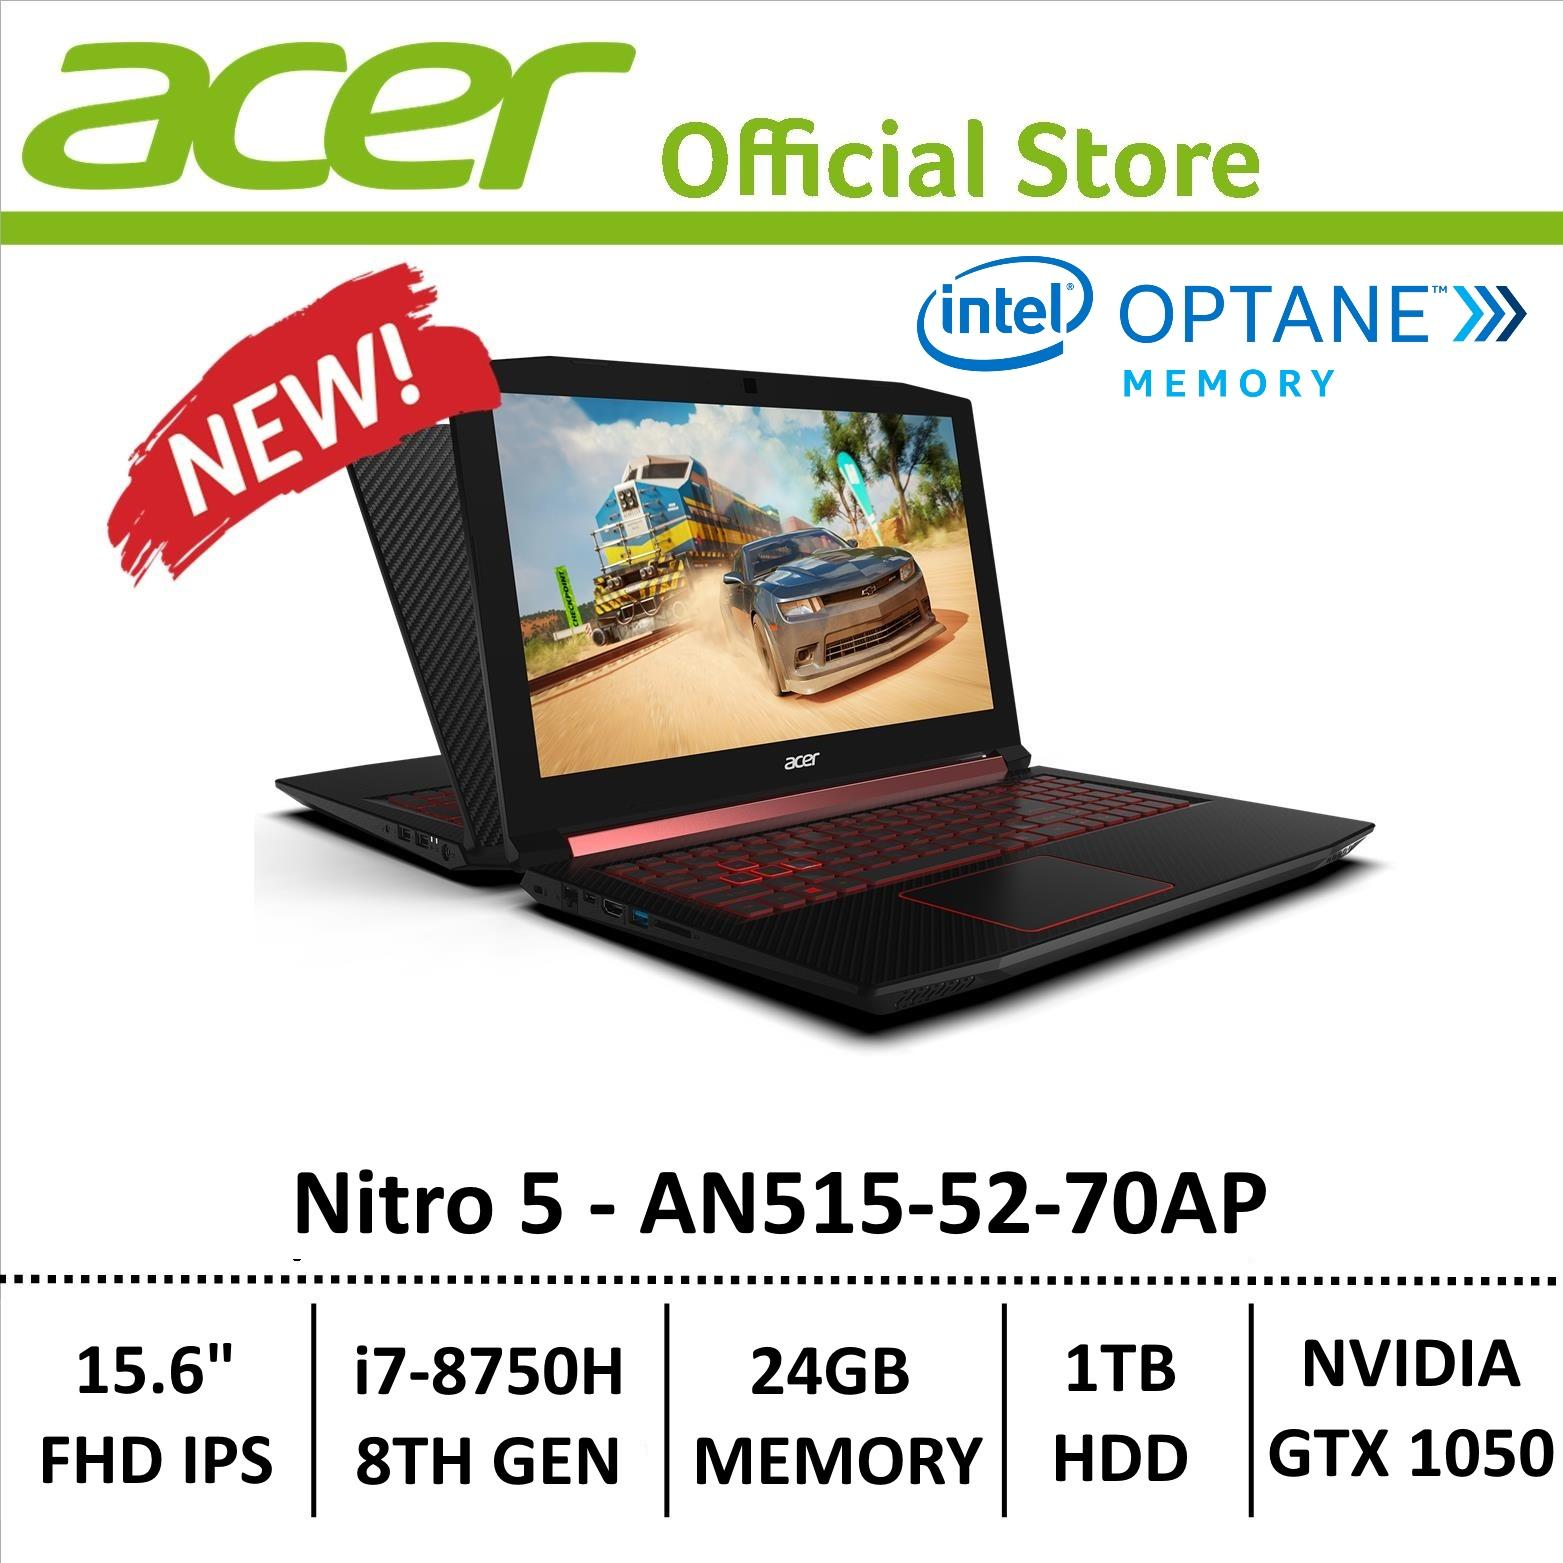 Acer Aspire Nitro 5 AN515-52-70AP Gaming Laptop - 8th Generation Core i7+ Processor with GTX 1050 Graphics (Optane Memory)